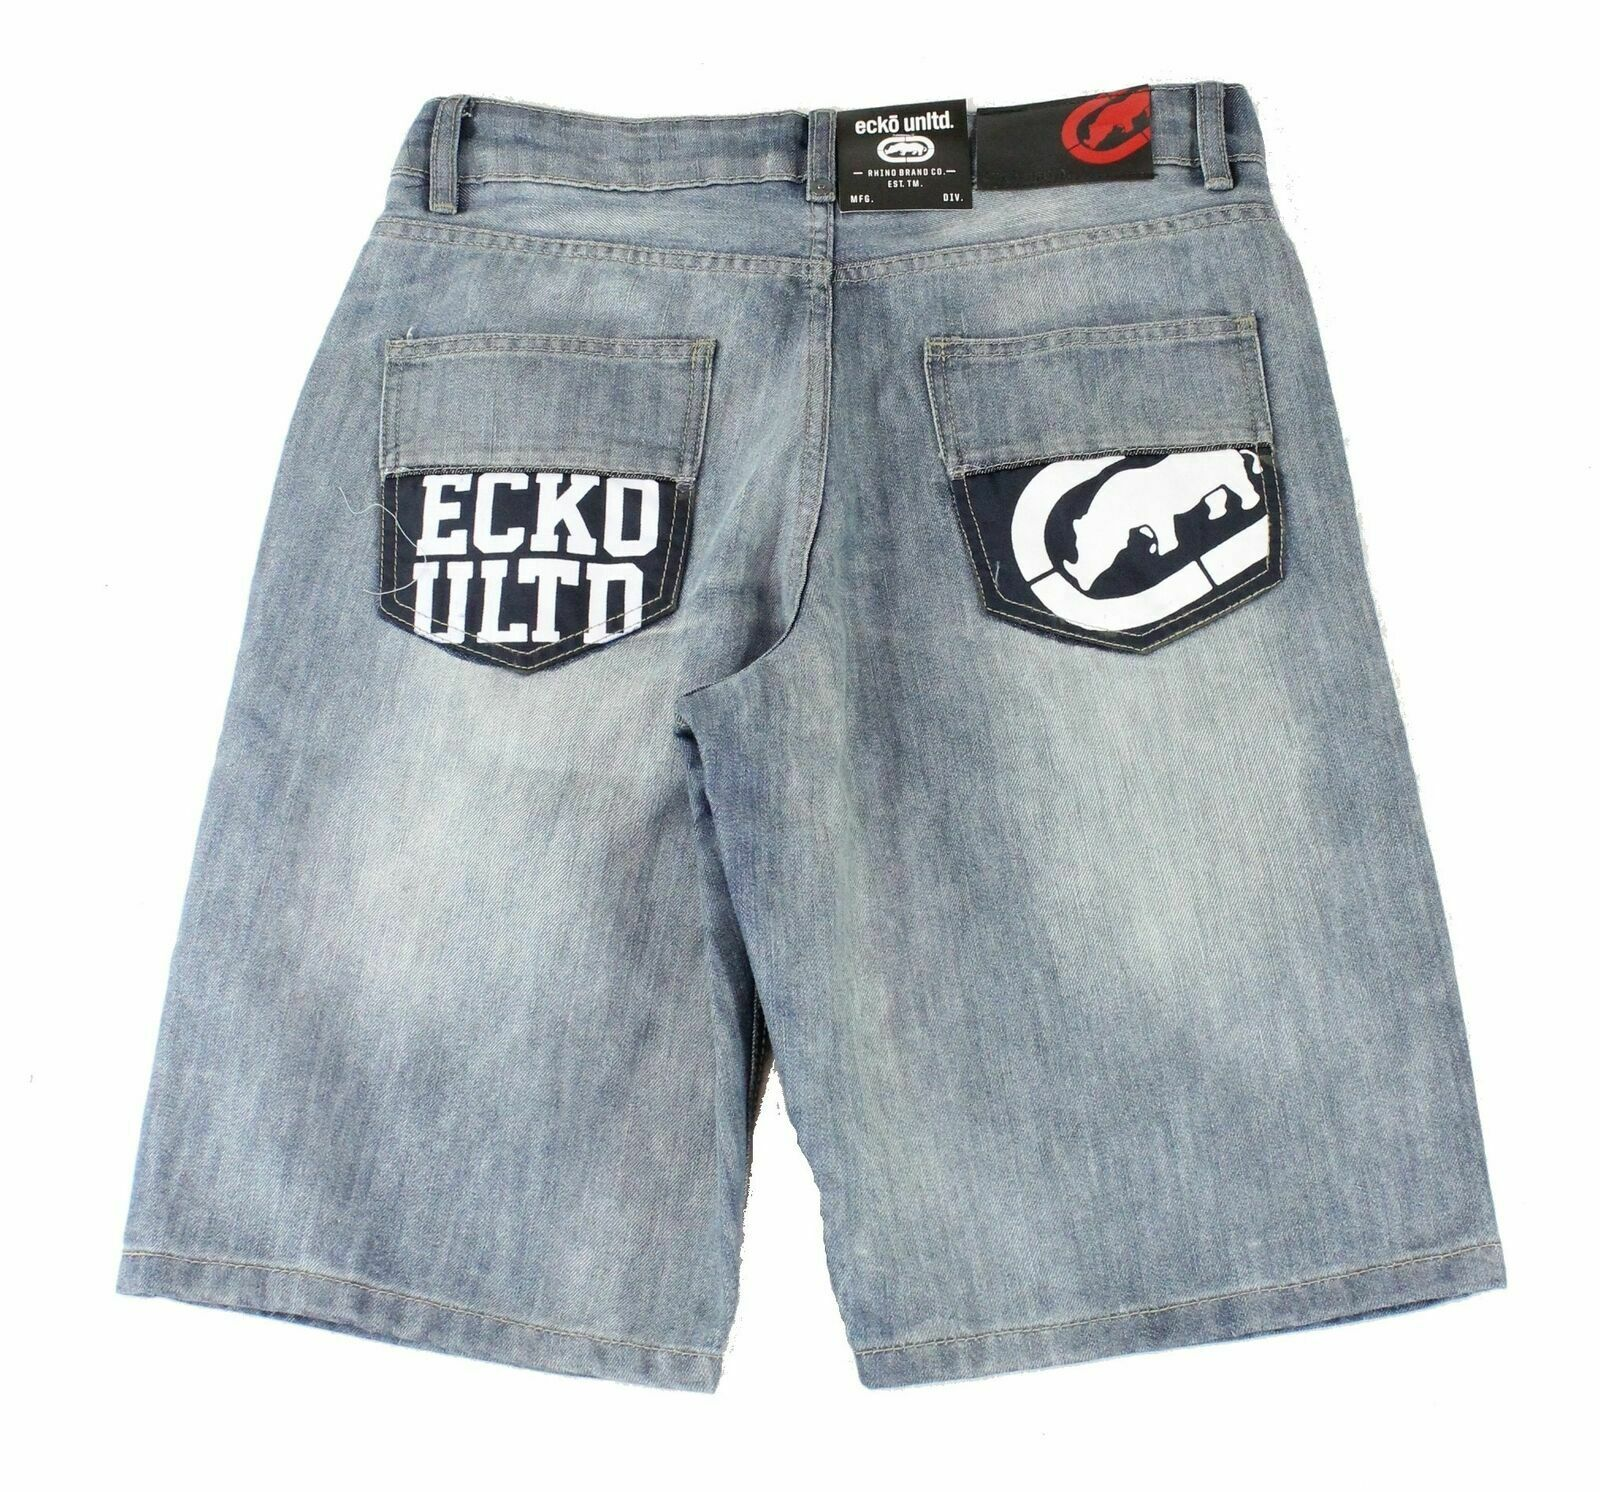 New-Ecko-Unltd-Mens-Shorts-Blue-Size-34-Denim-759-Relaxed-Logo-Printed-48-214 thumbnail 2